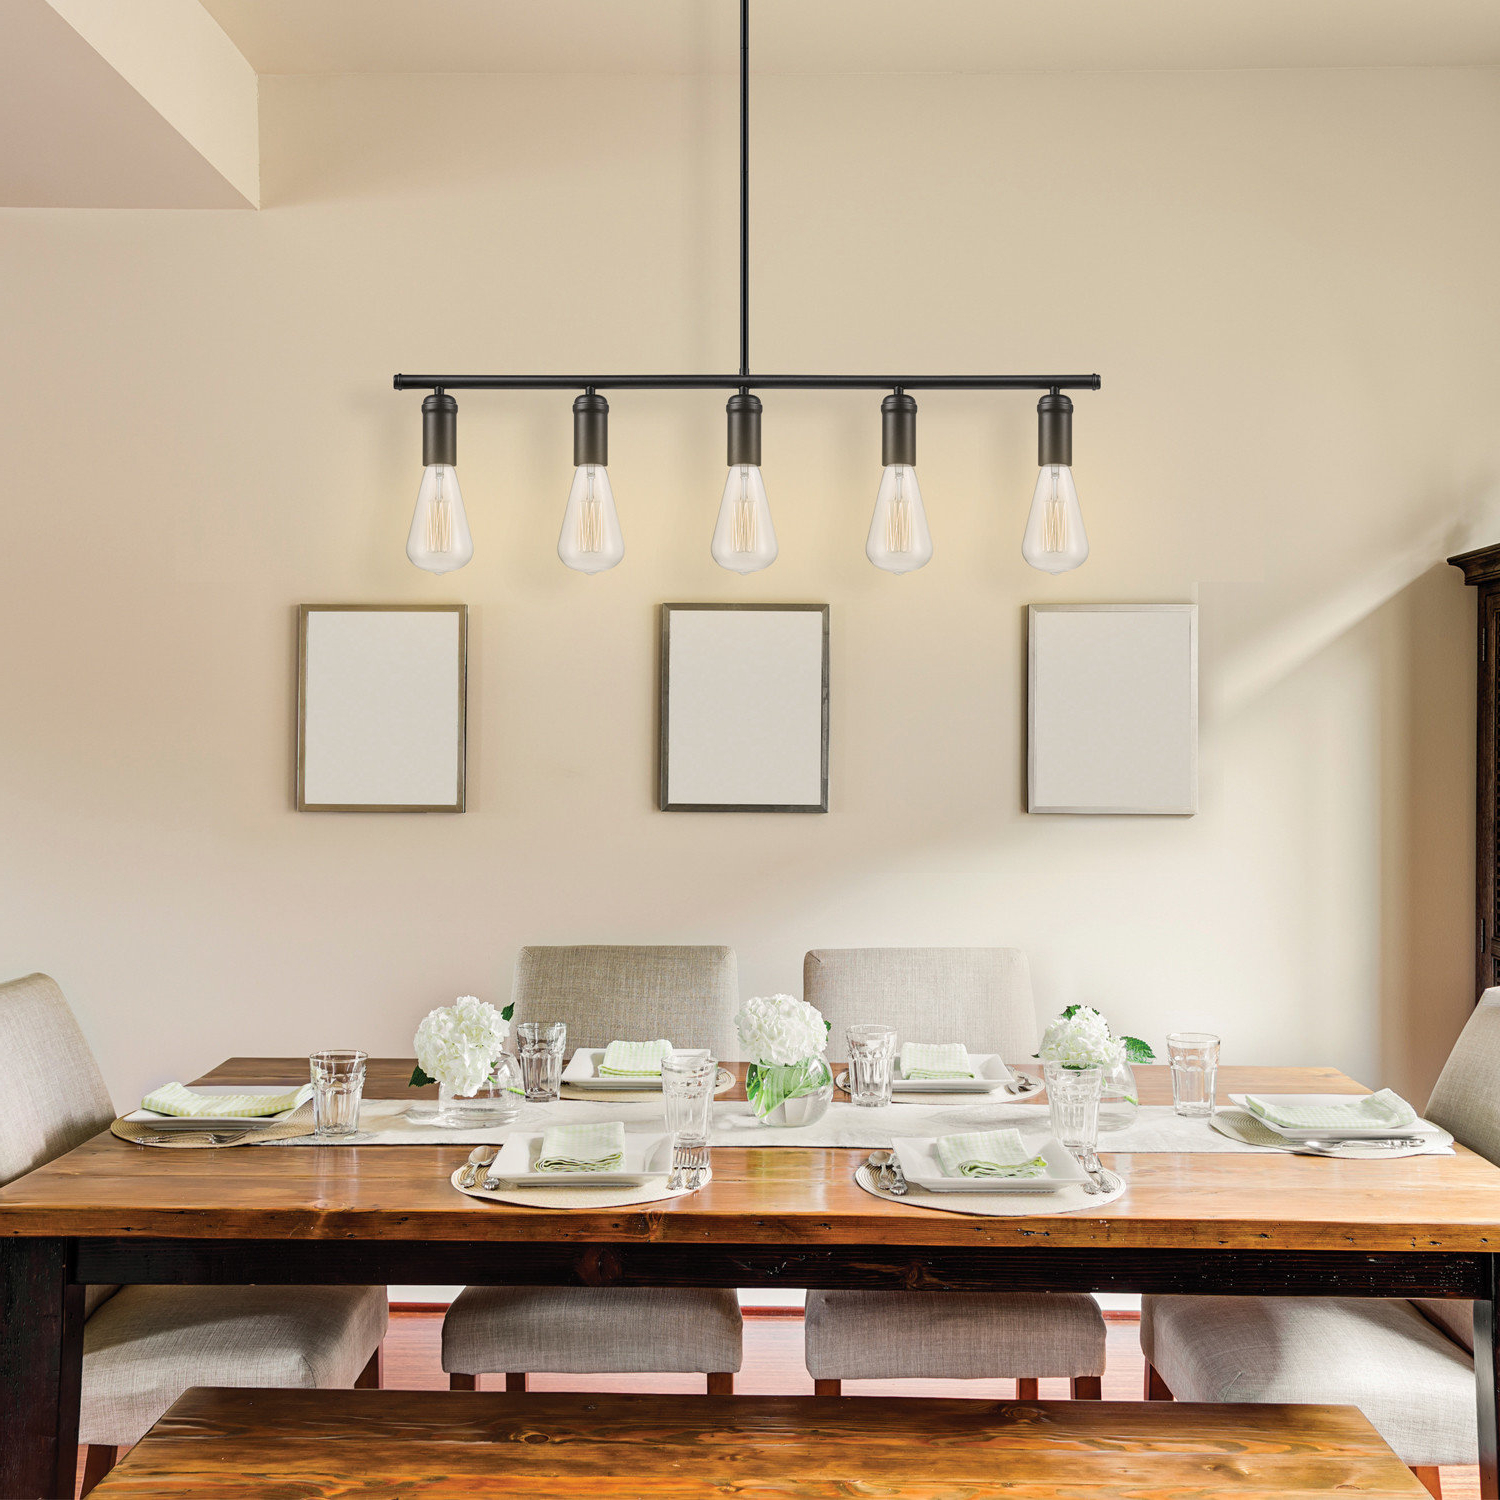 Hinerman 5 Light Kitchen Island Pendants For Popular 4 – 6 Light Black Pendant Lighting You'll Love In 2019 (Gallery 16 of 25)